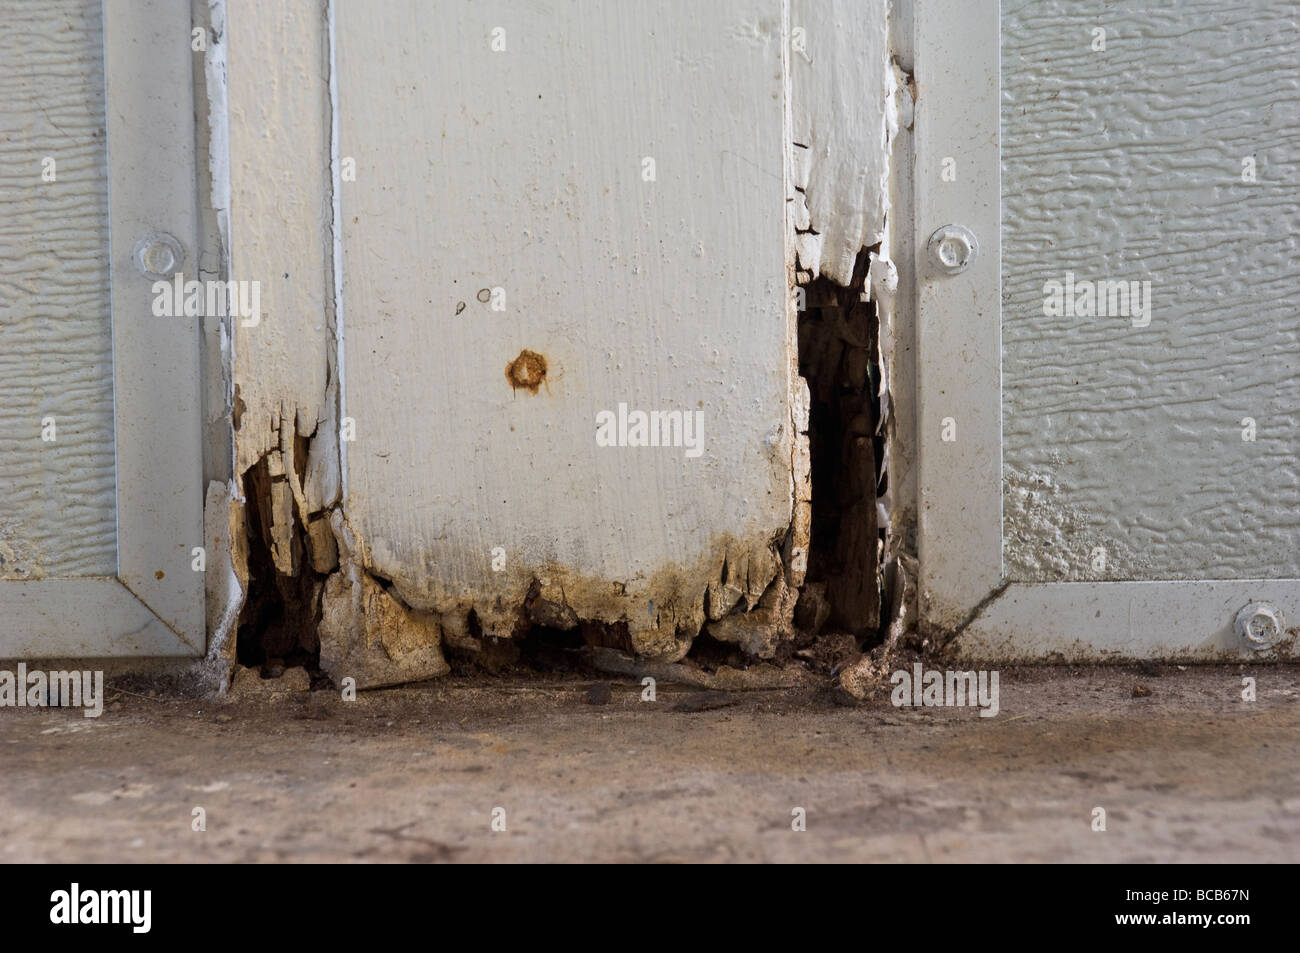 water damaged rotting wooden post - Stock Image